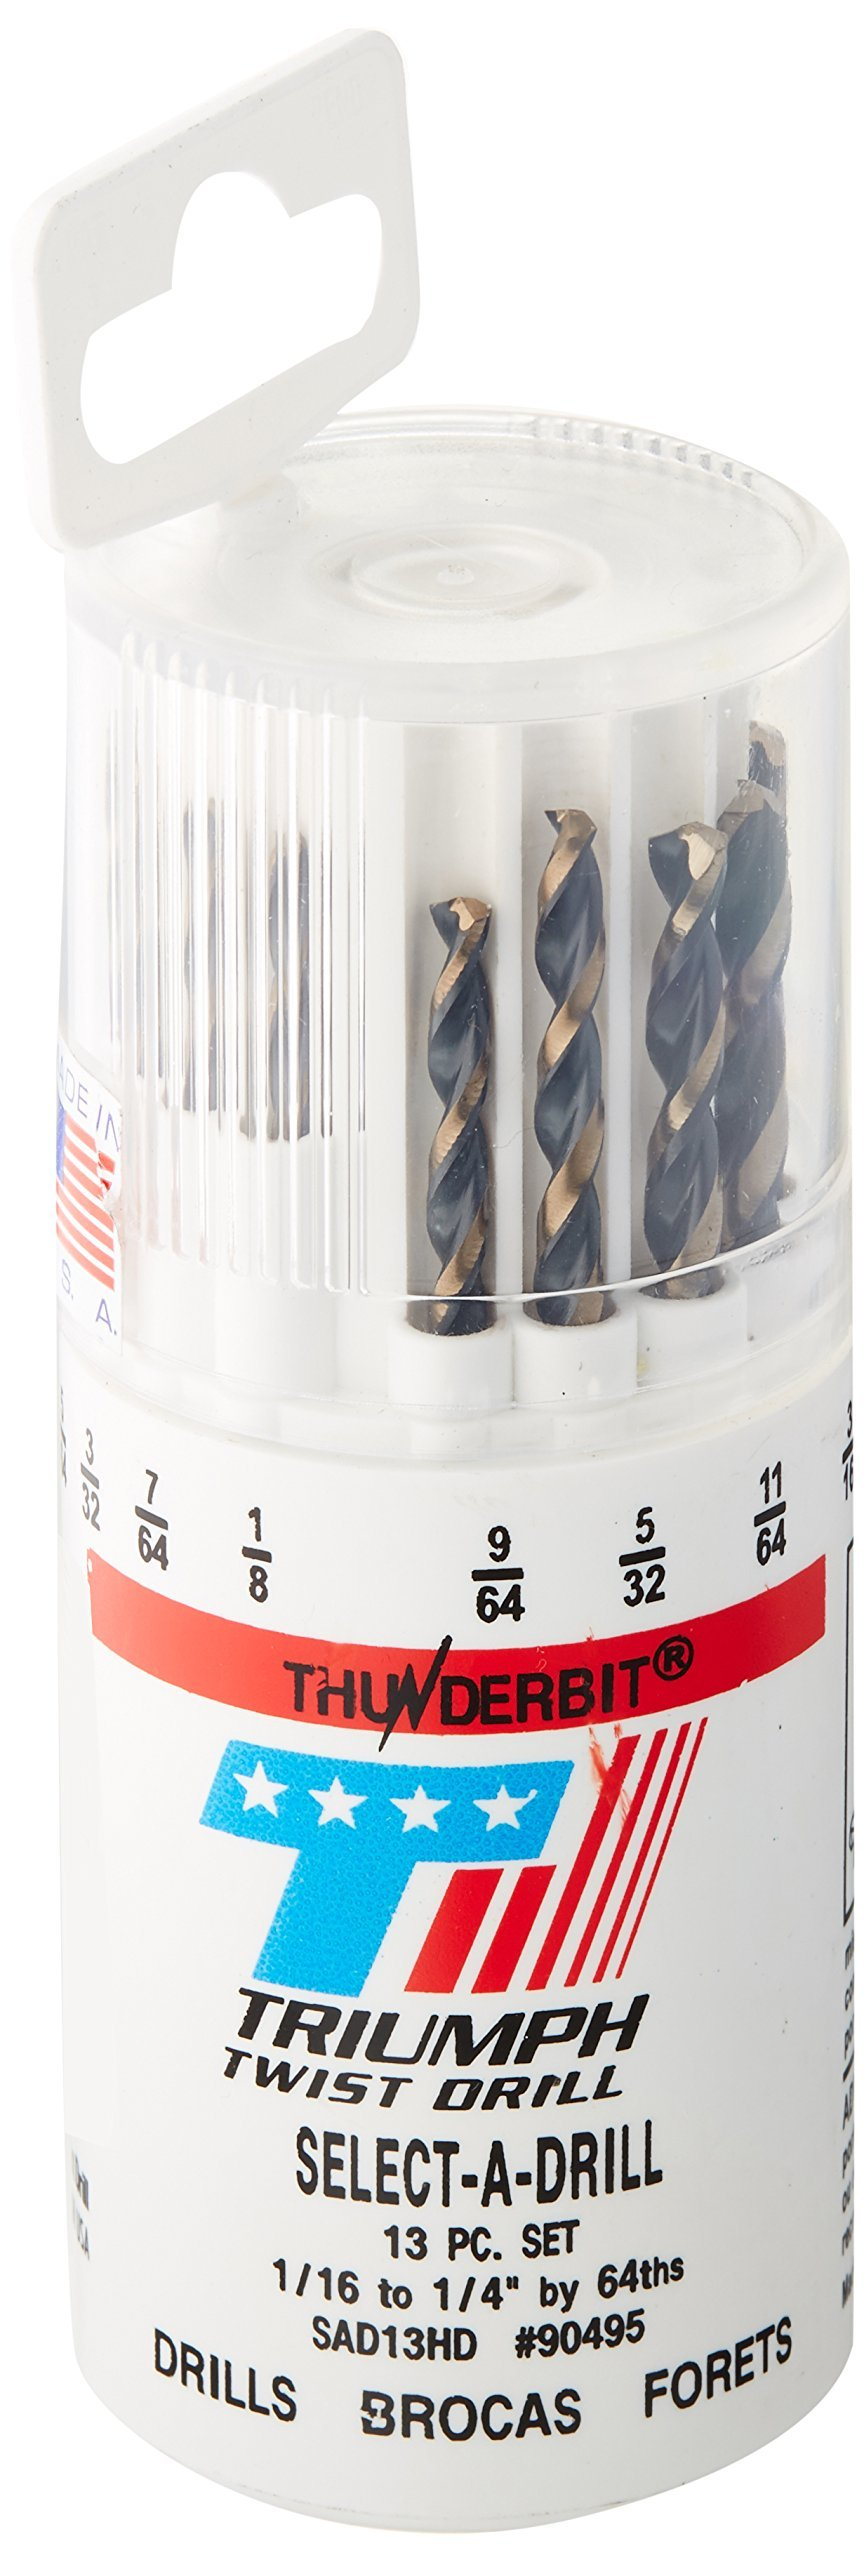 Triumph Twist Drill Co. 090495 SAD13HD Size Ranger 1/16-Inch-1/4-Inch by 64ths High Speed Steel Drill Set, Black and Bronze Oxide Coated, 1-Pack by Triumph Twist Drill Co.